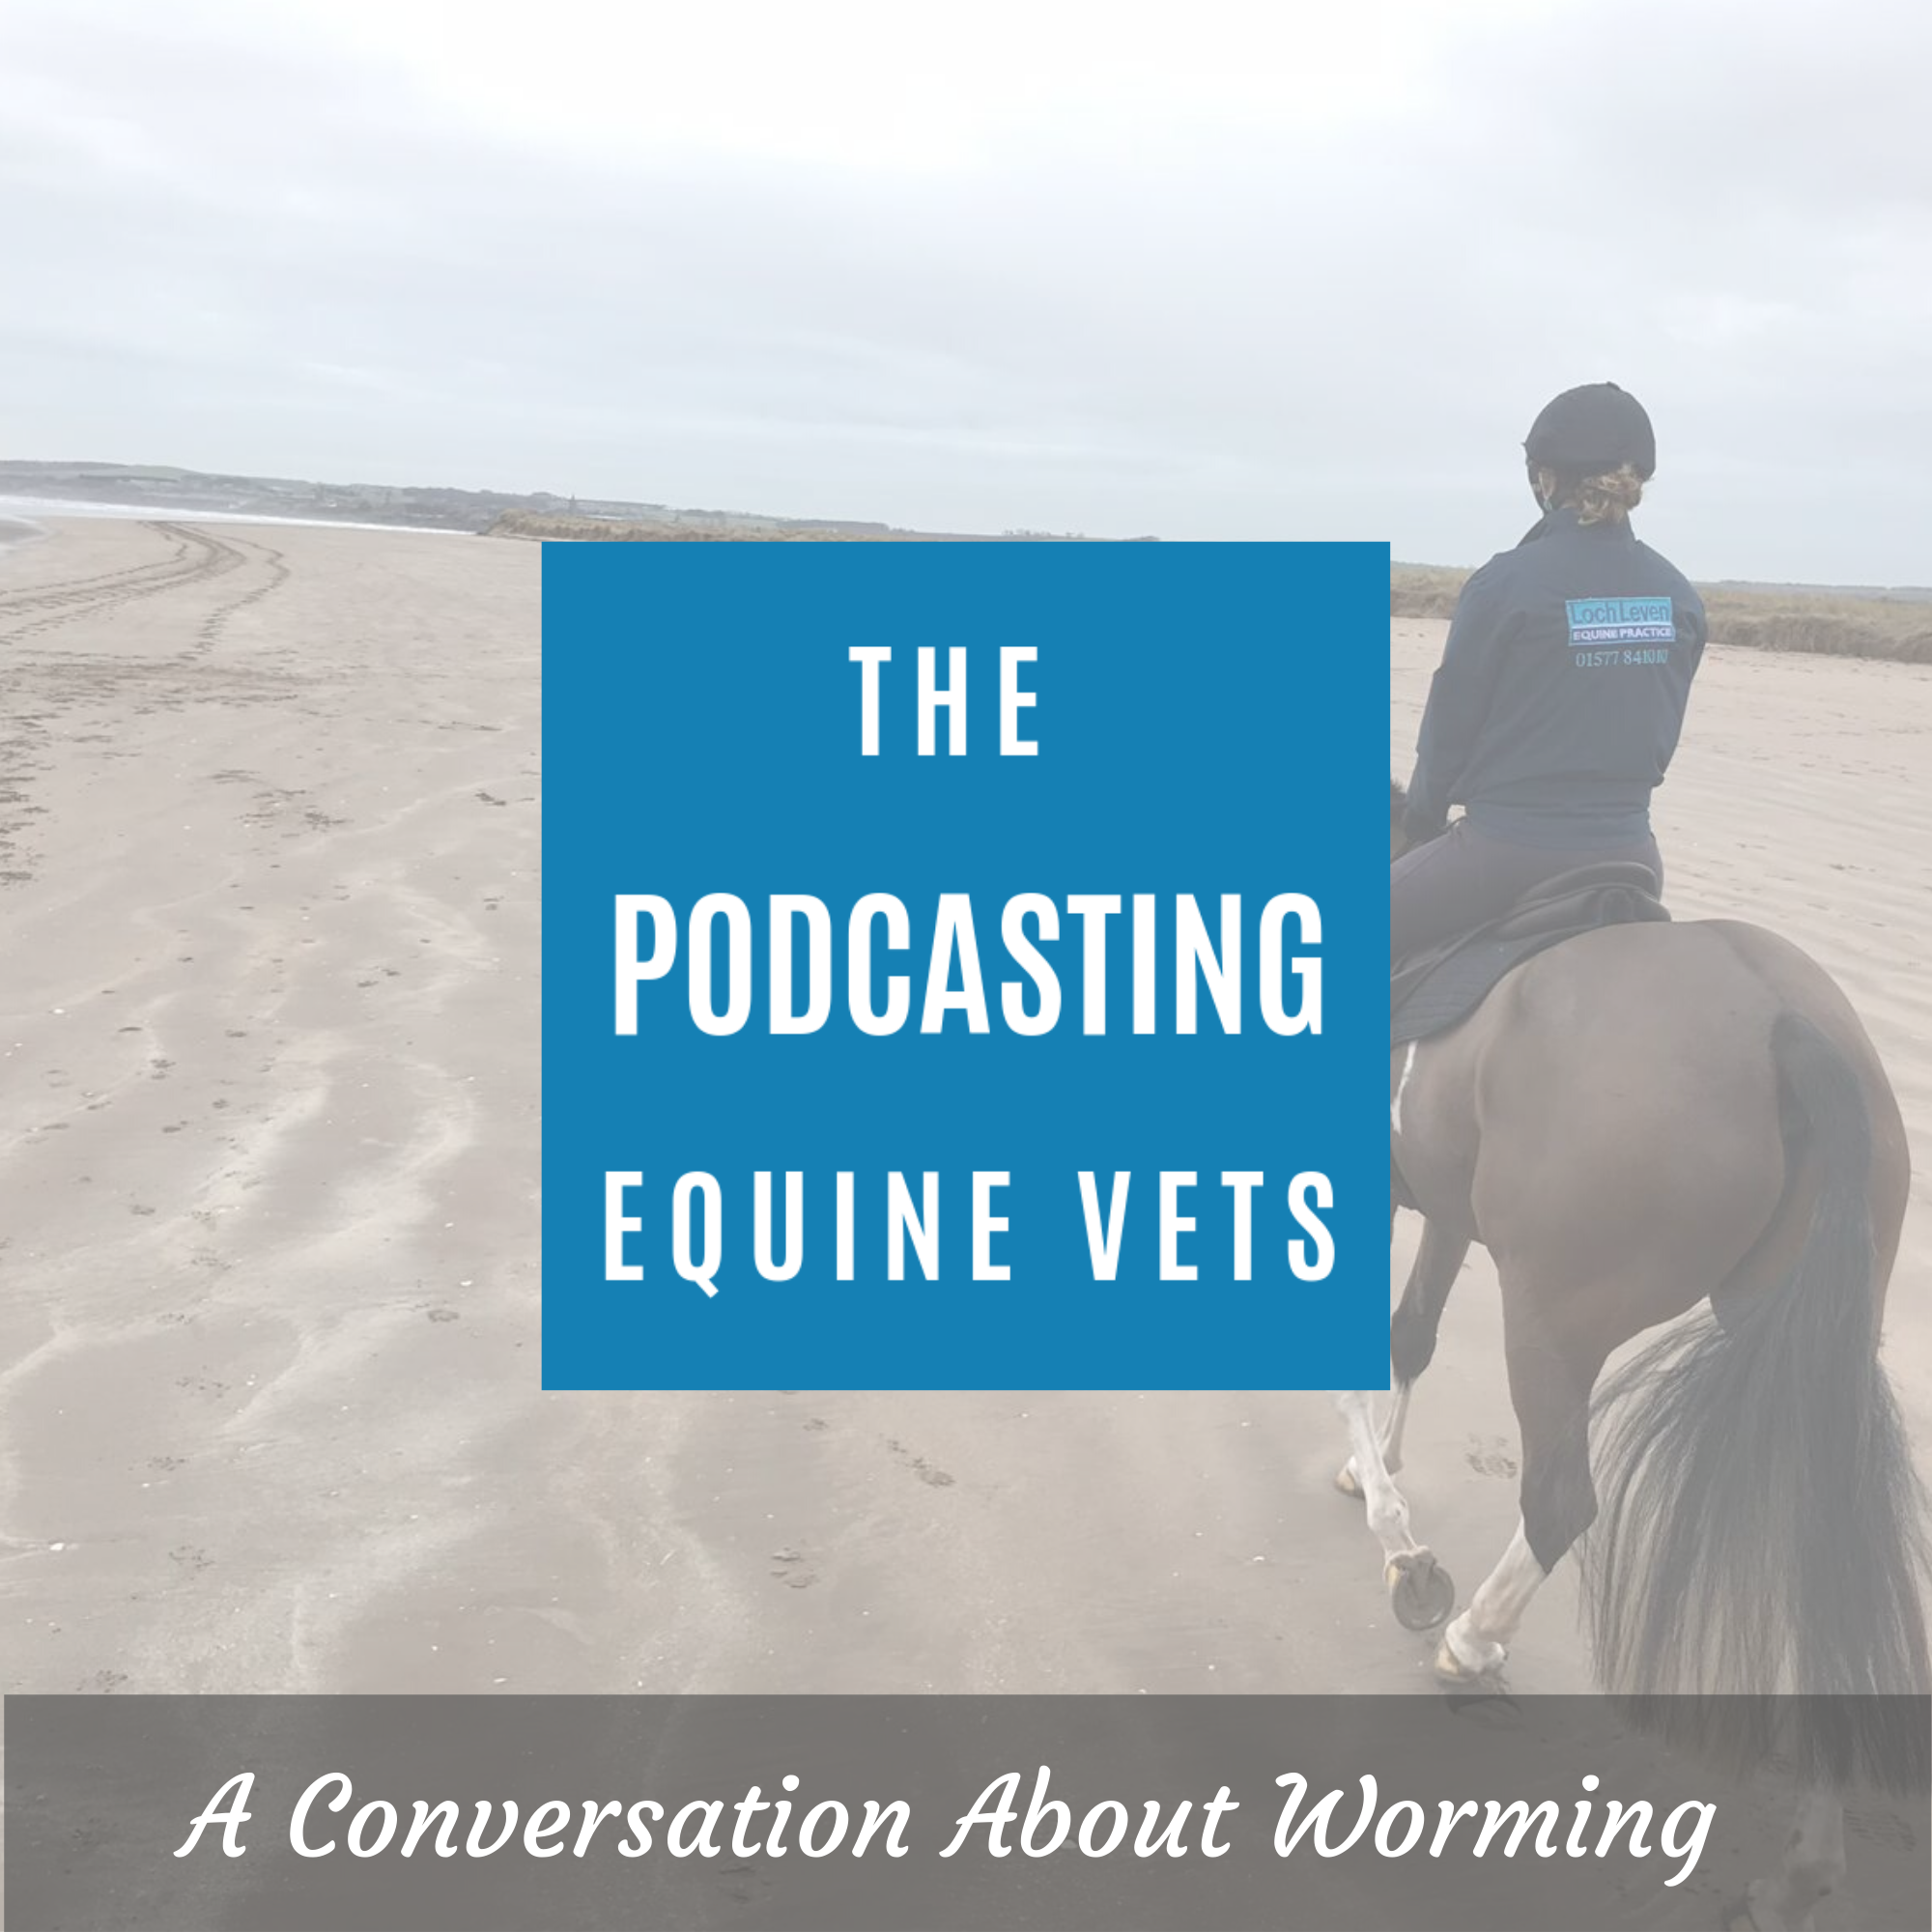 A Conversation About Worming